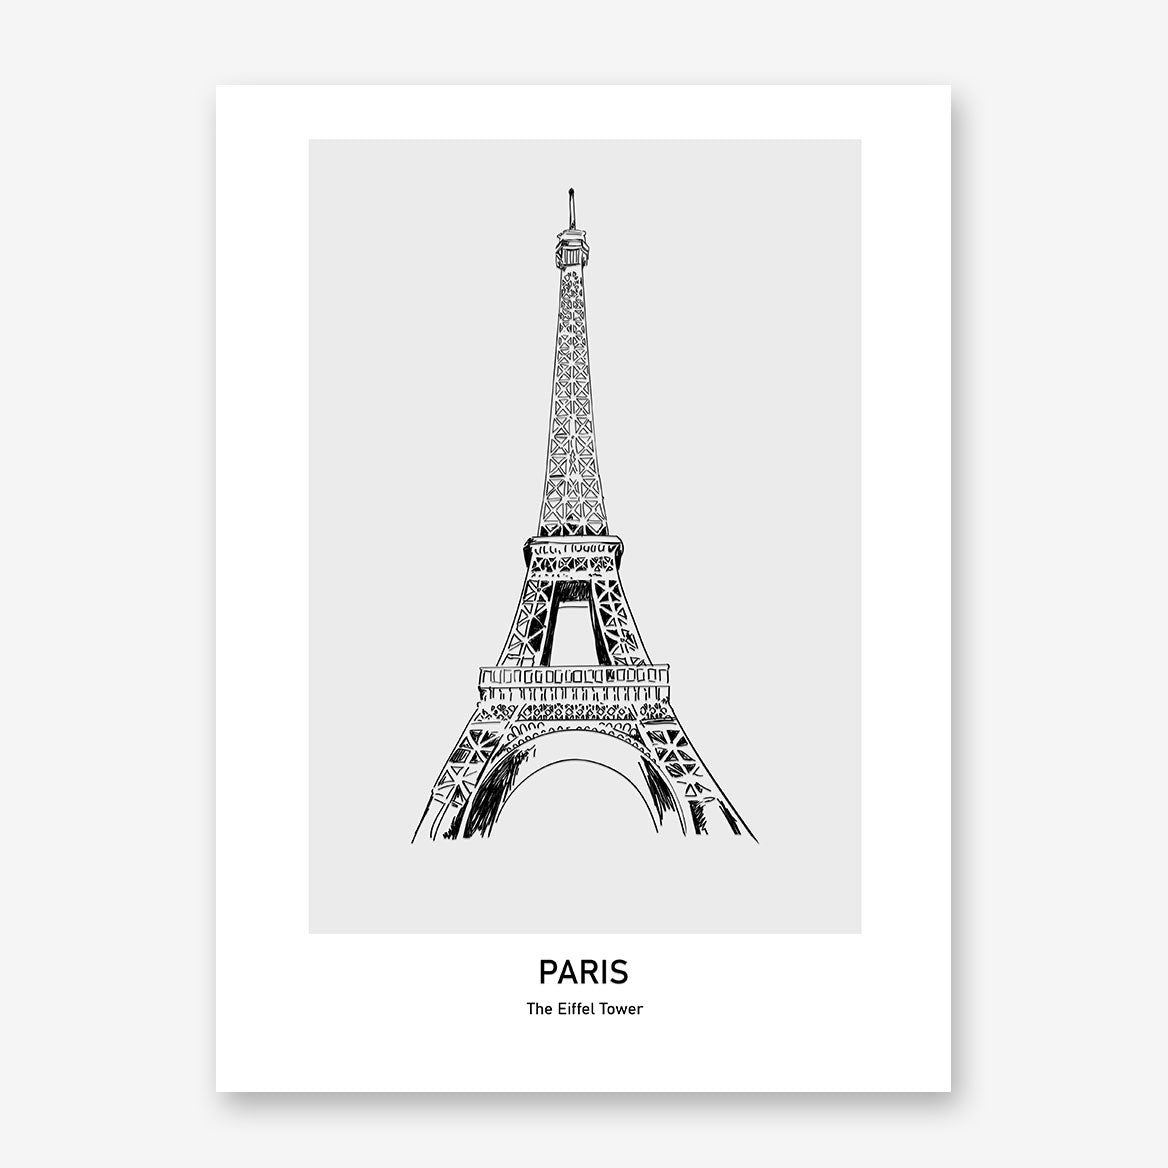 Doodle inspired poster print with drawing and text - Paris, The Eiffel Tower.